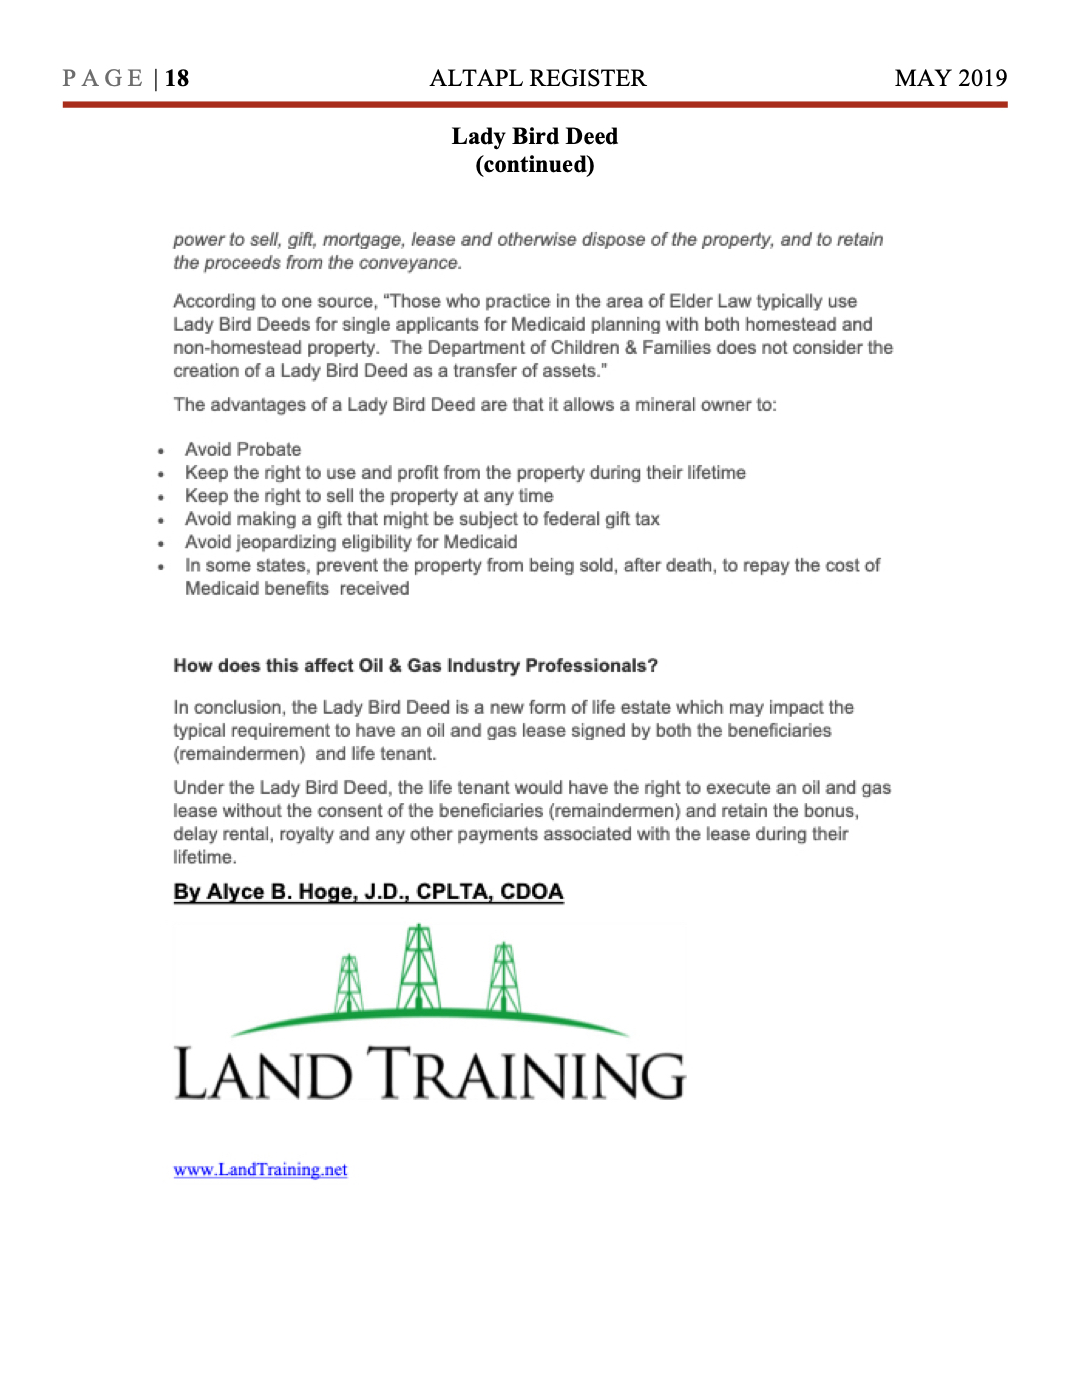 ALTAPL Register May 2019 Page 18.jpg